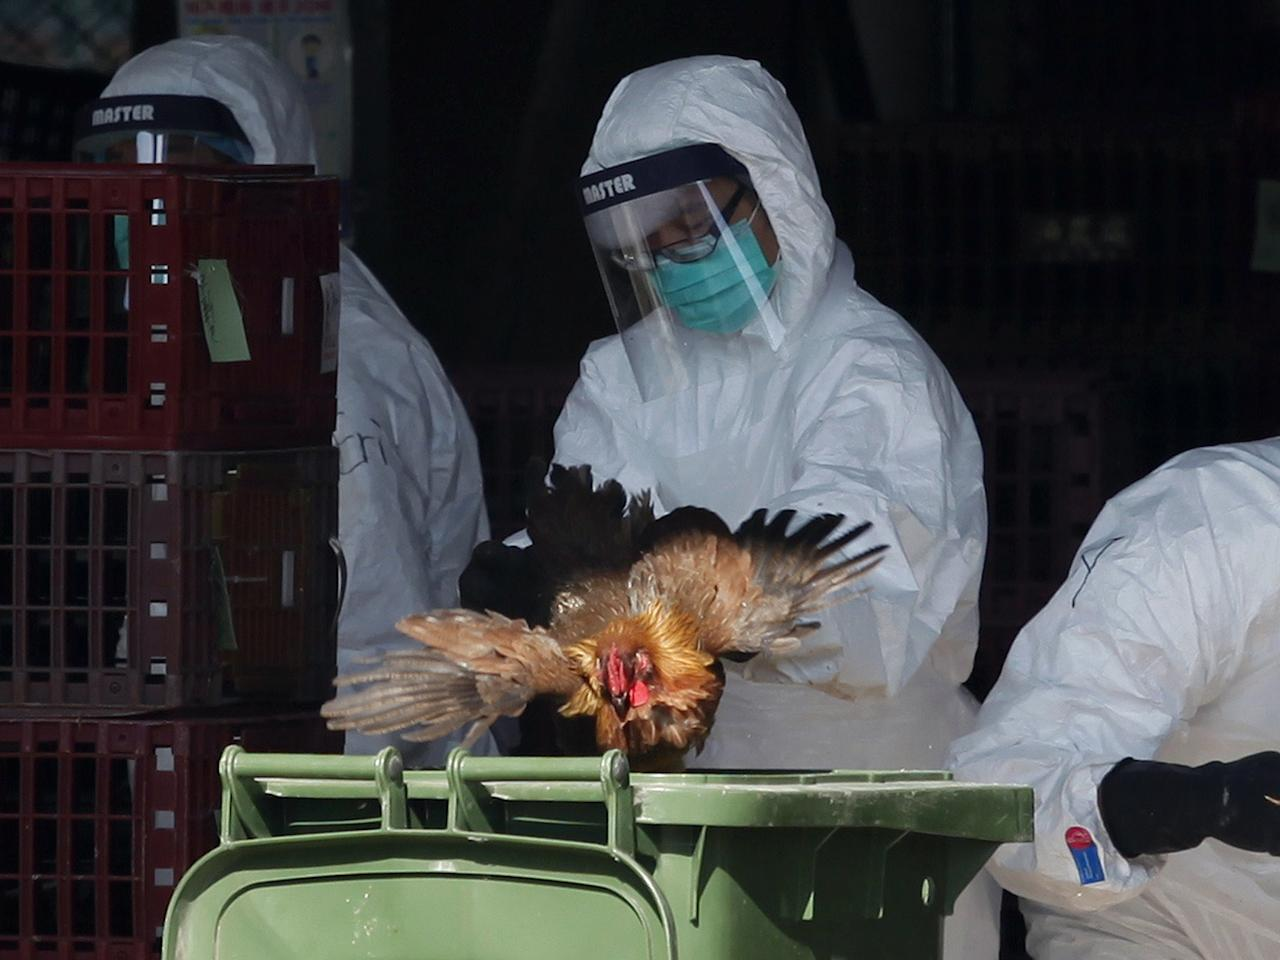 Scientists create 'mutant bird flu' to prepare for possibility of deadly global pandemic